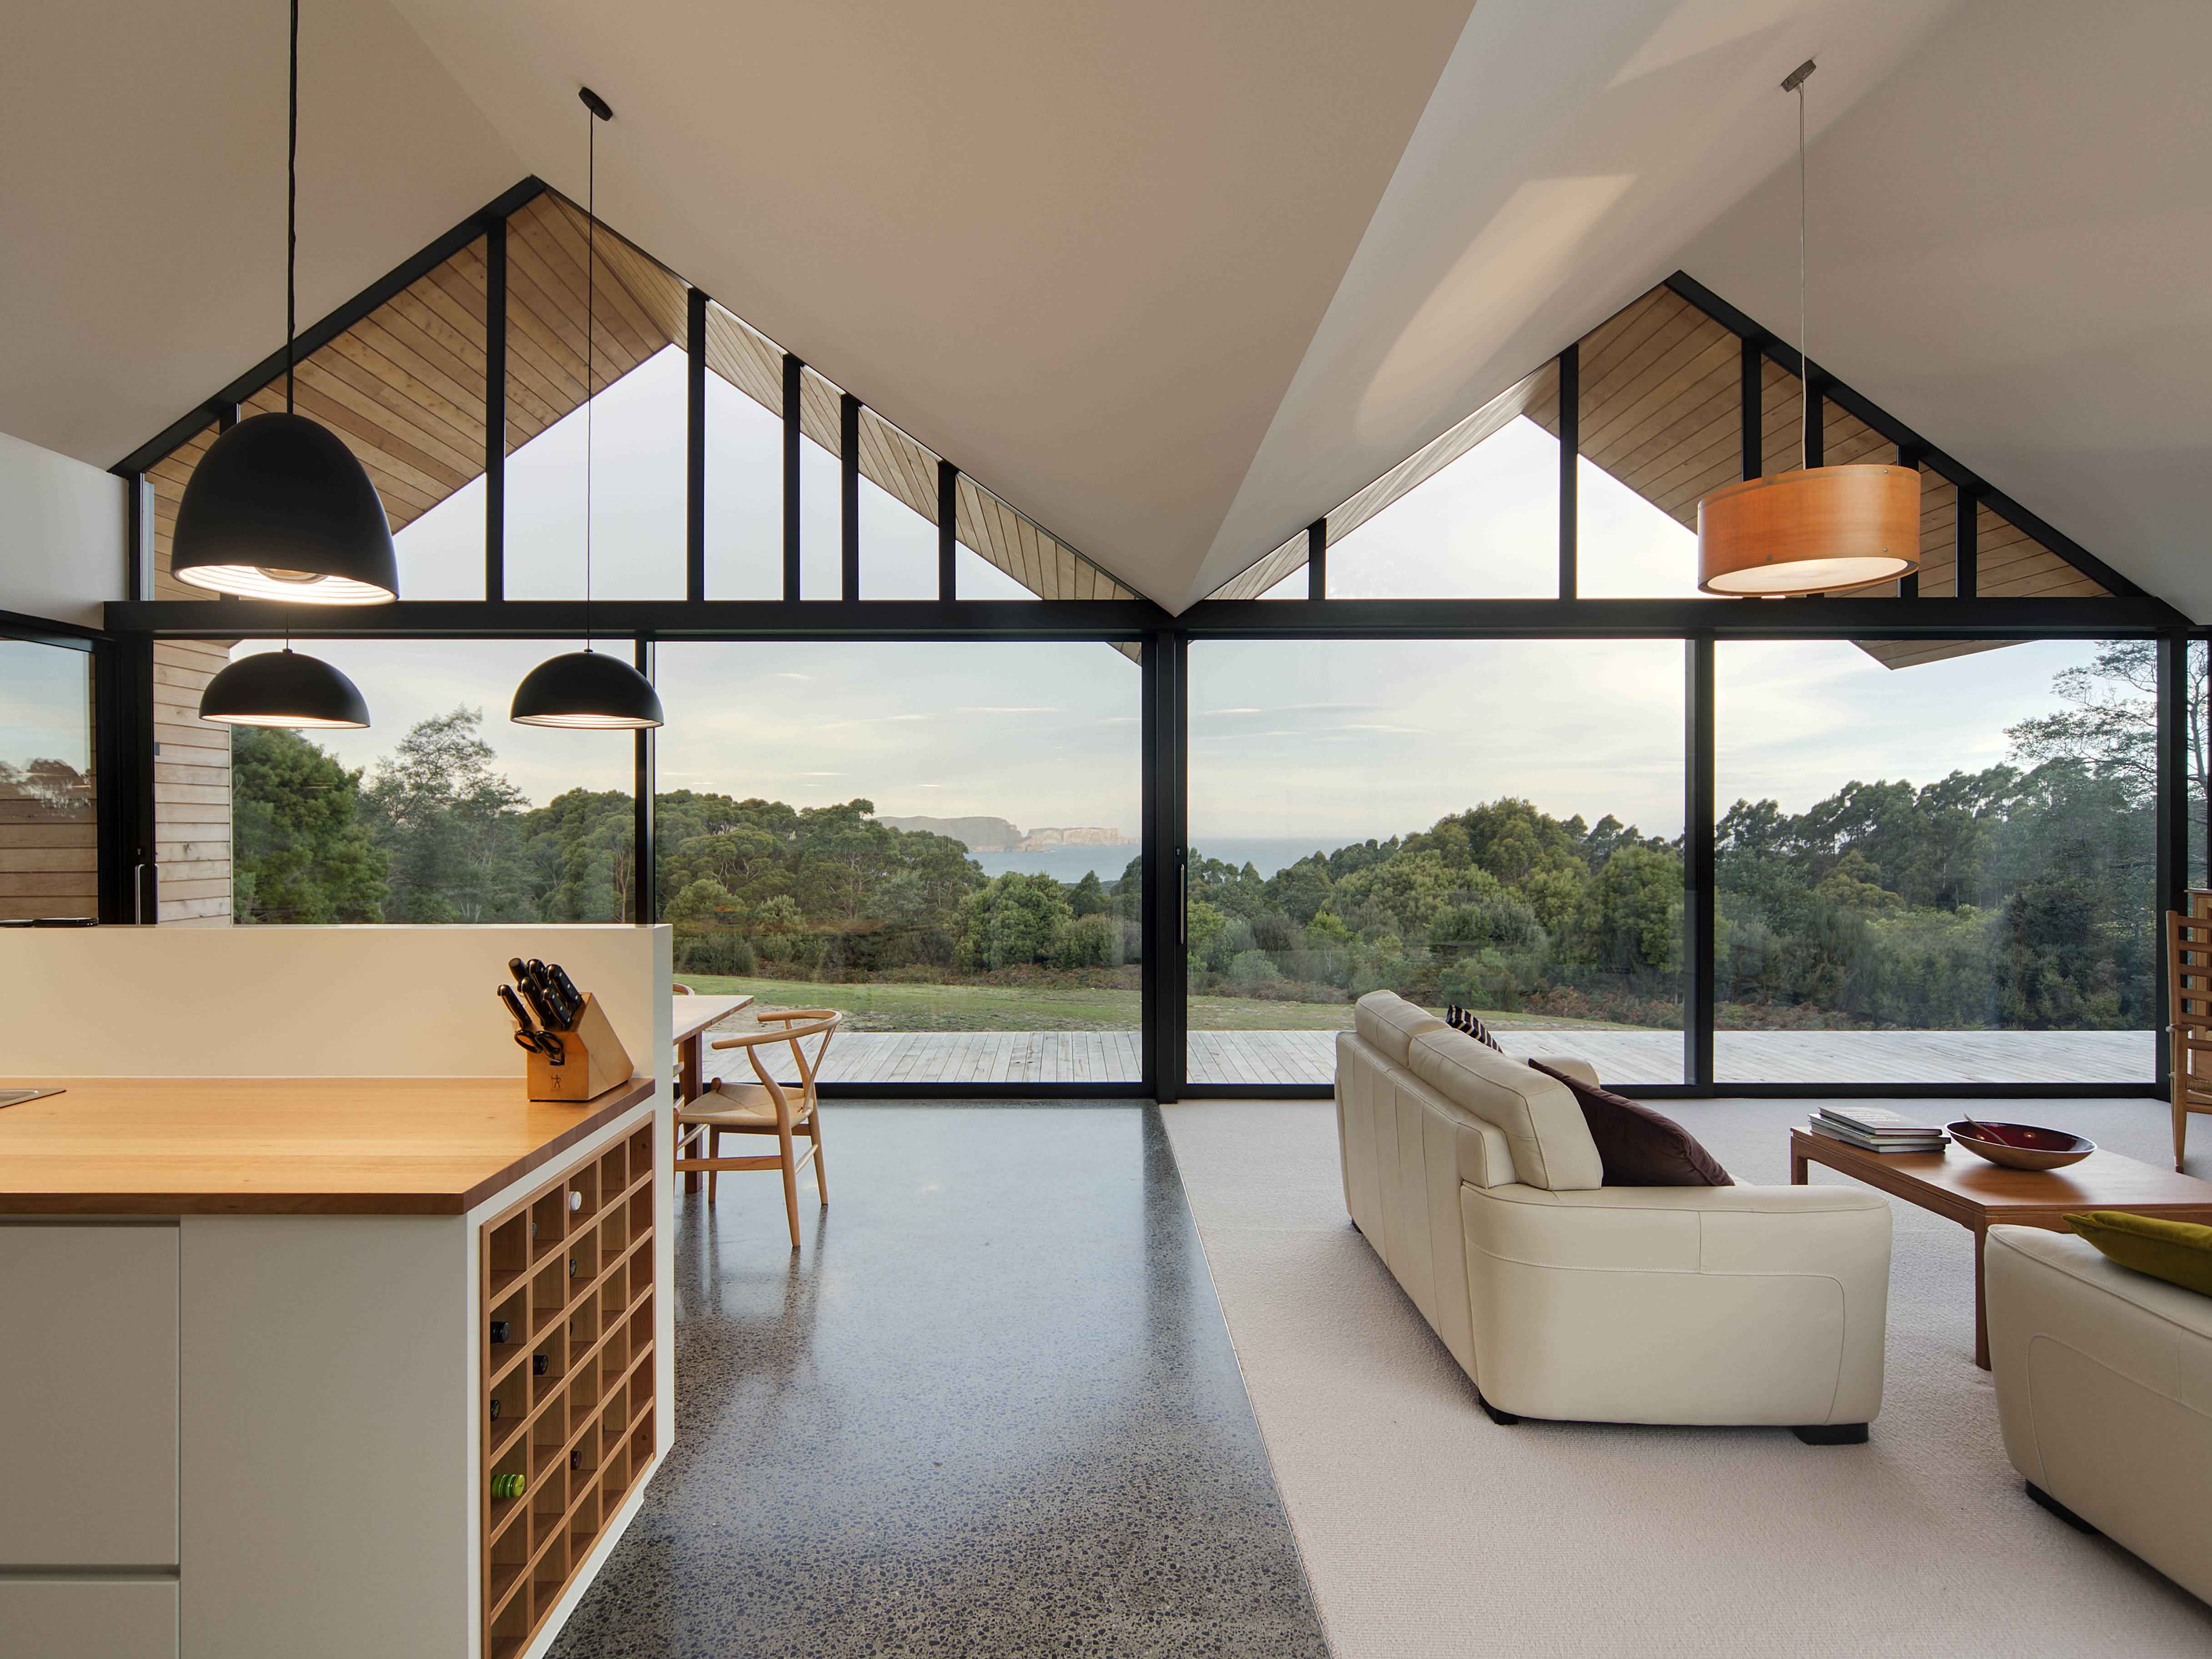 Panorama of the Lookout House in Tasmania